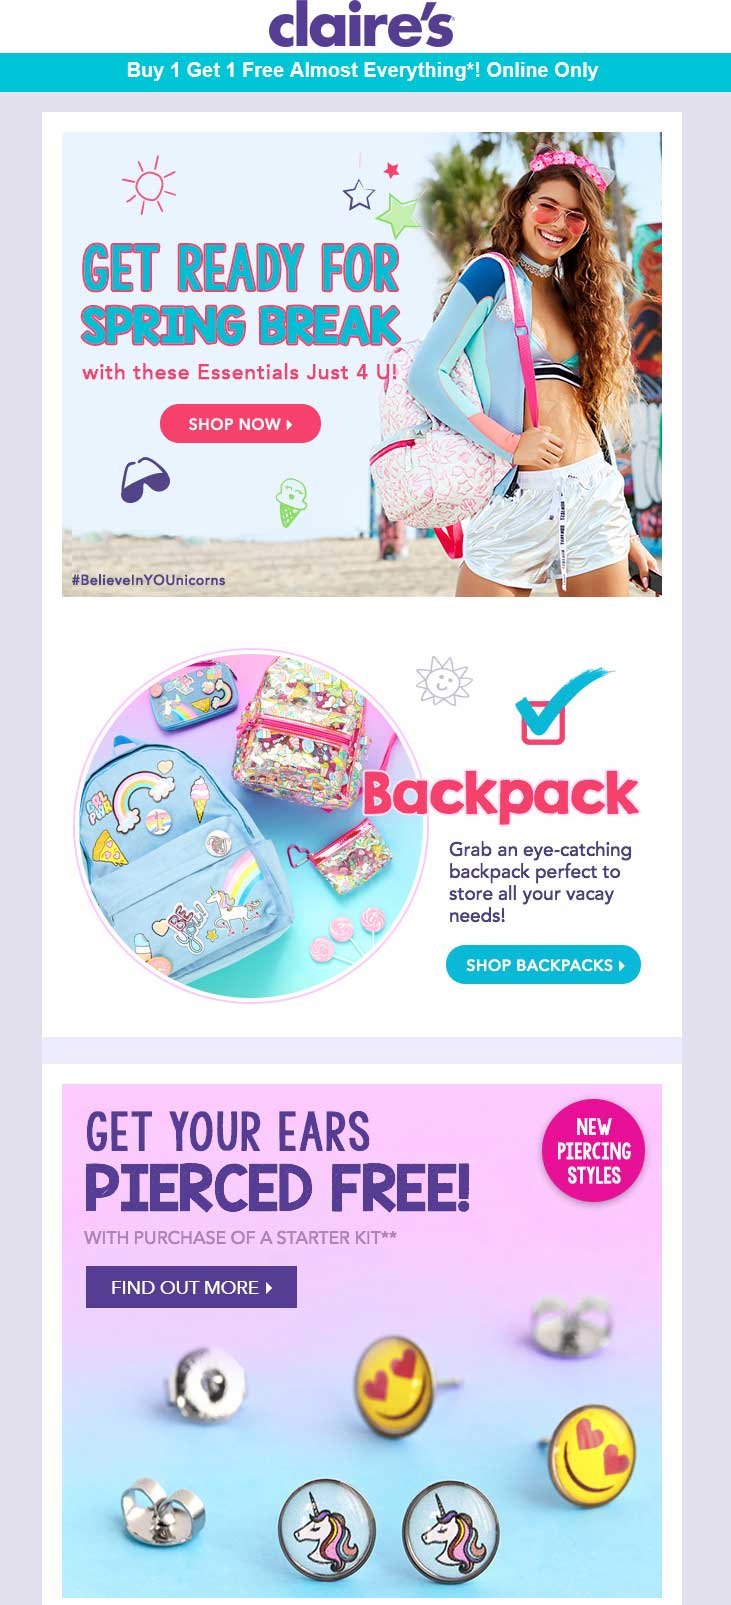 Claires Coupon August 2018 Second item free online at Claires